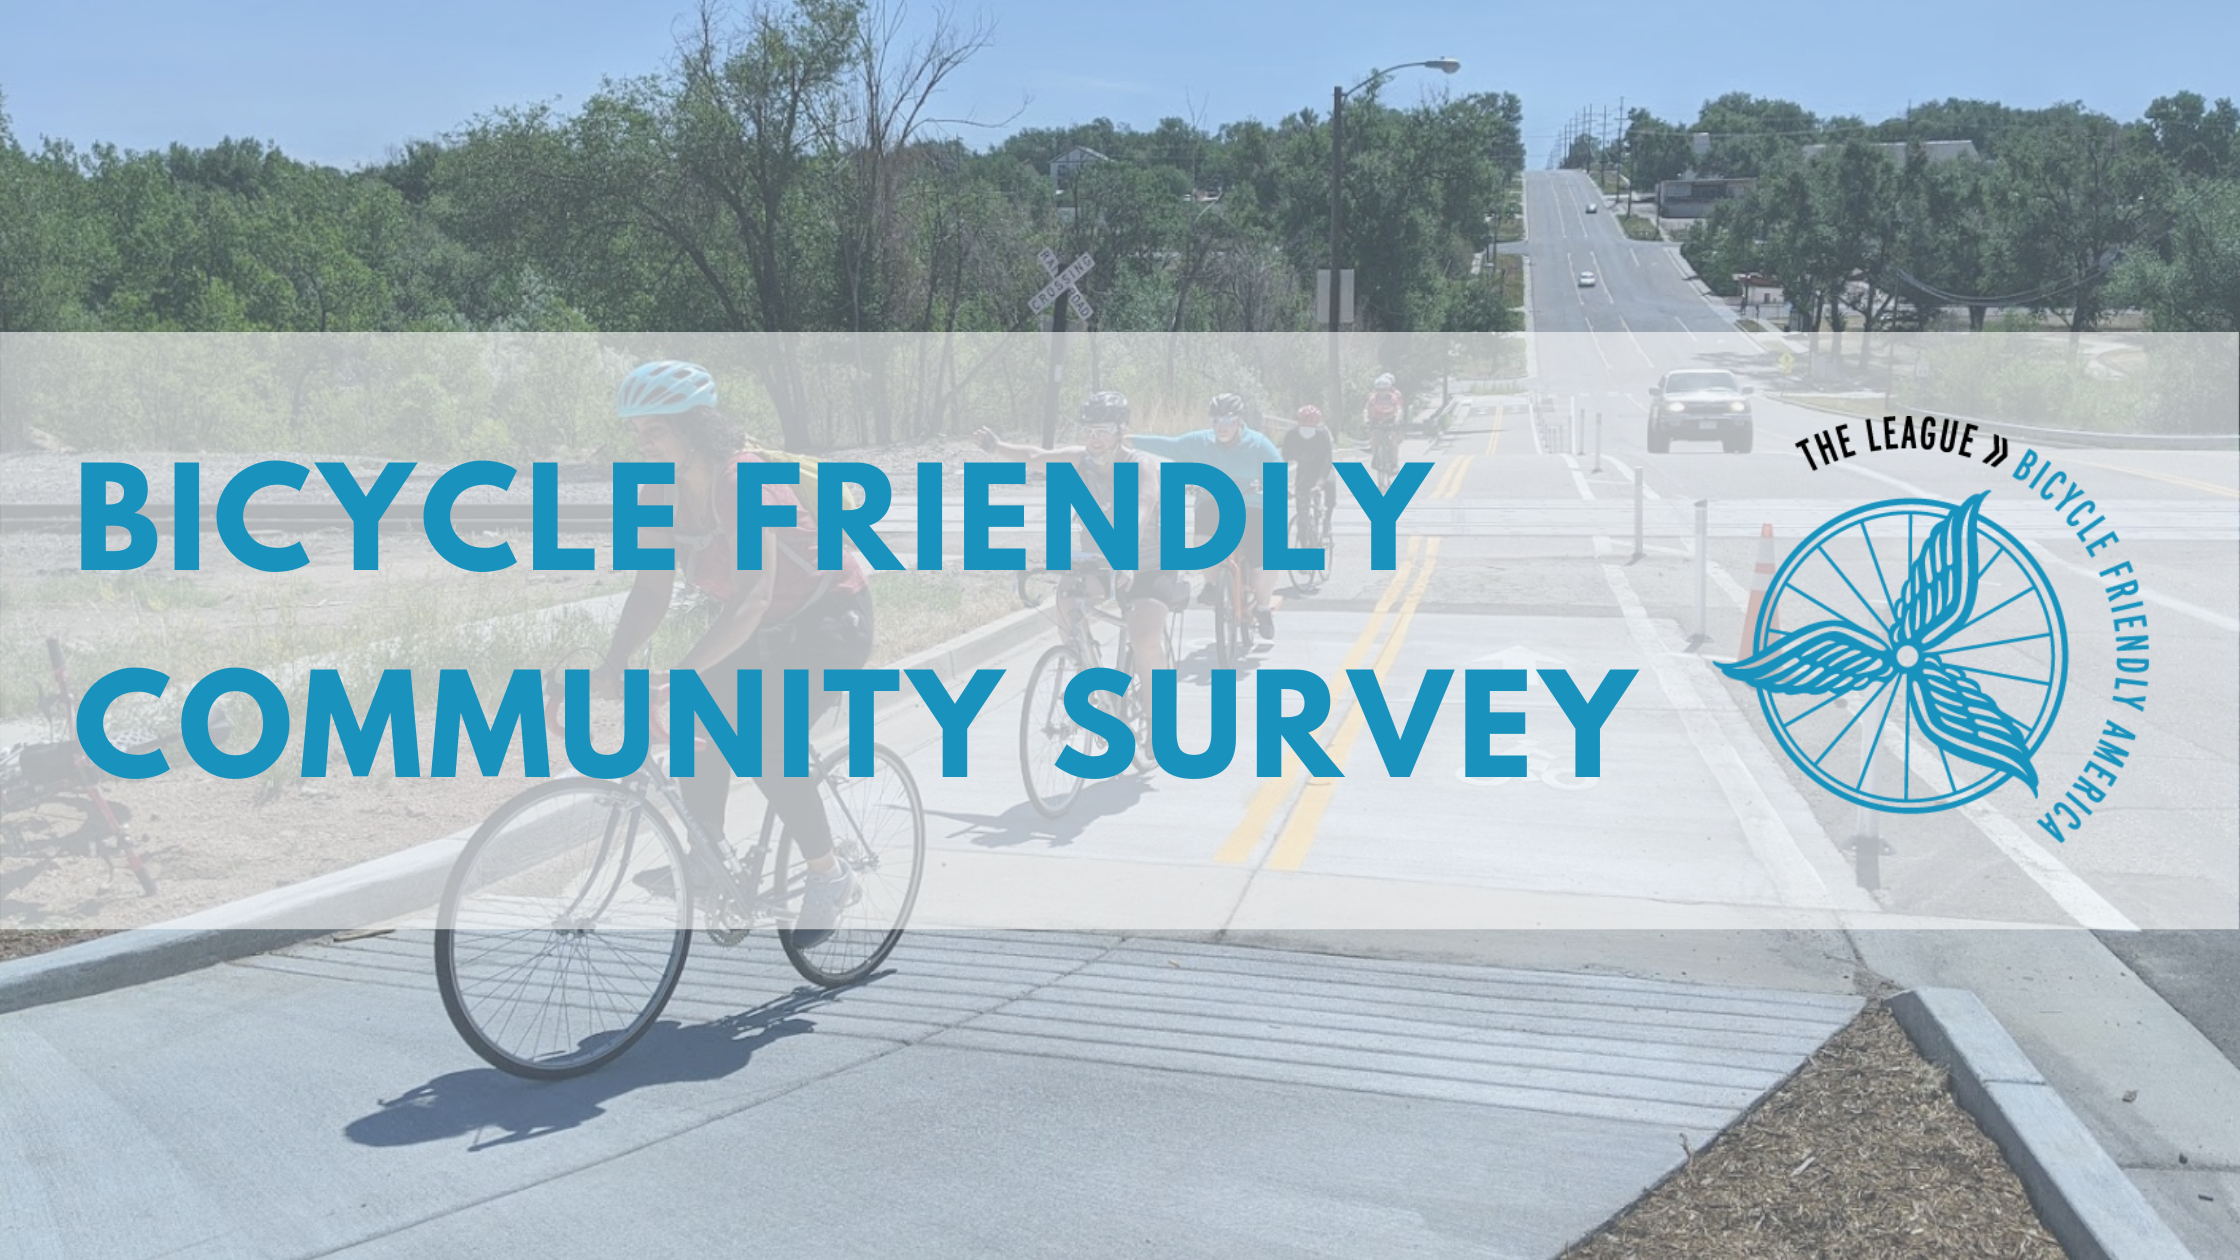 Bicycle Friendly Community Survey